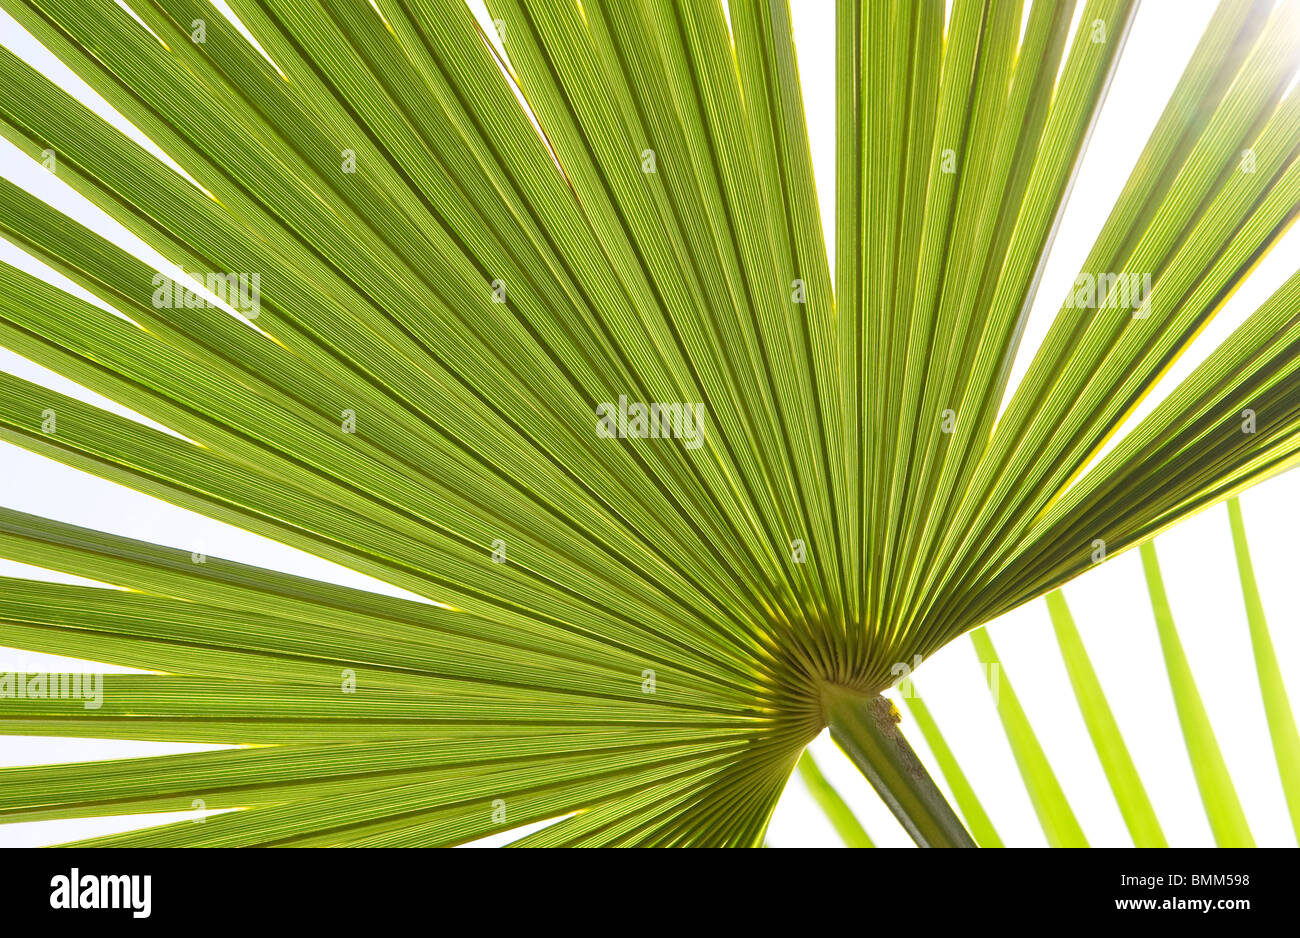 green palm leaf abstract pattern - Stock Image